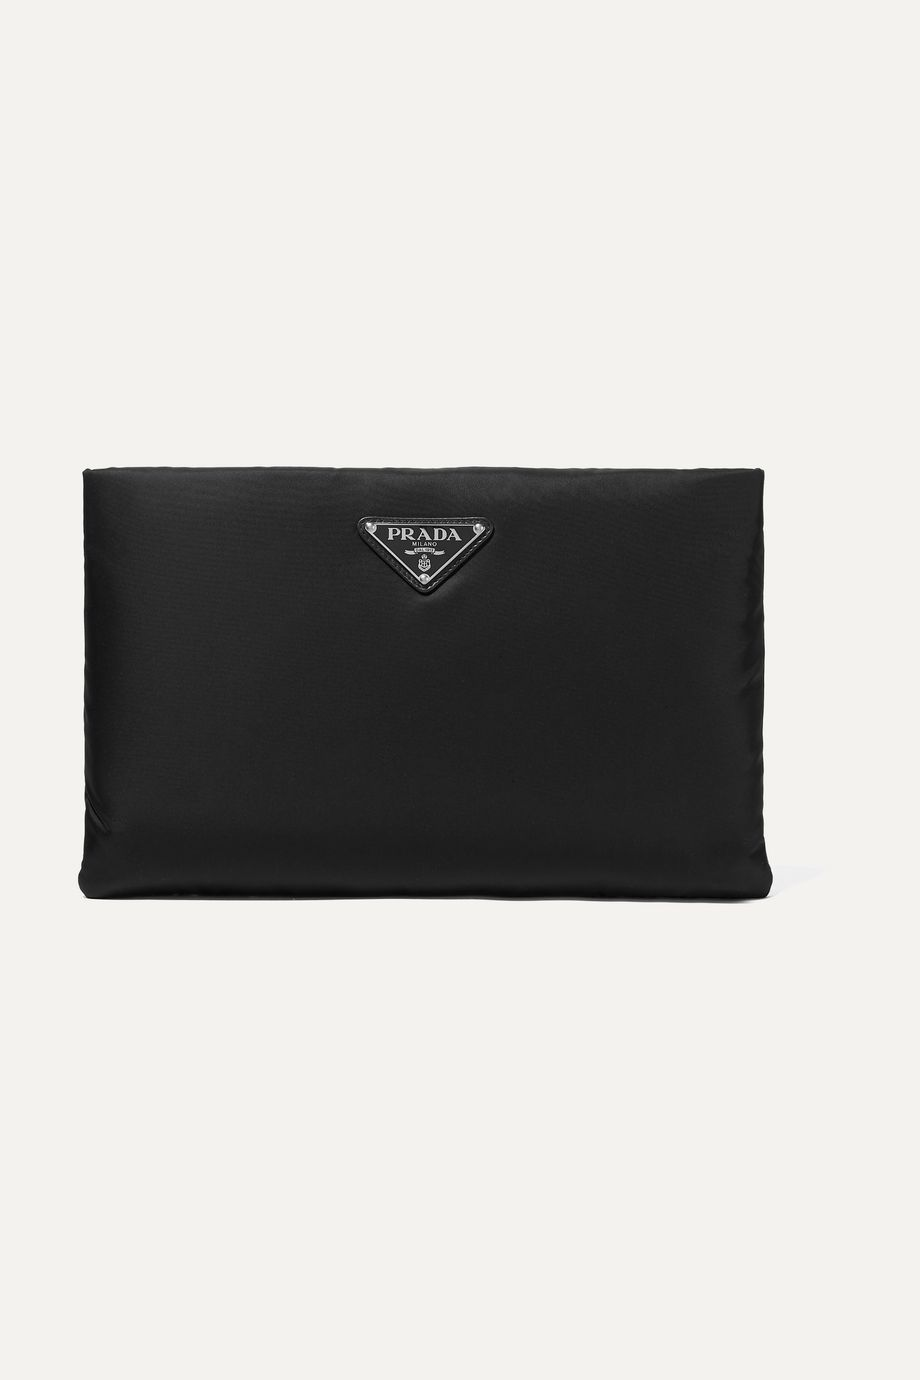 Prada Leather-trimmed shell pouch